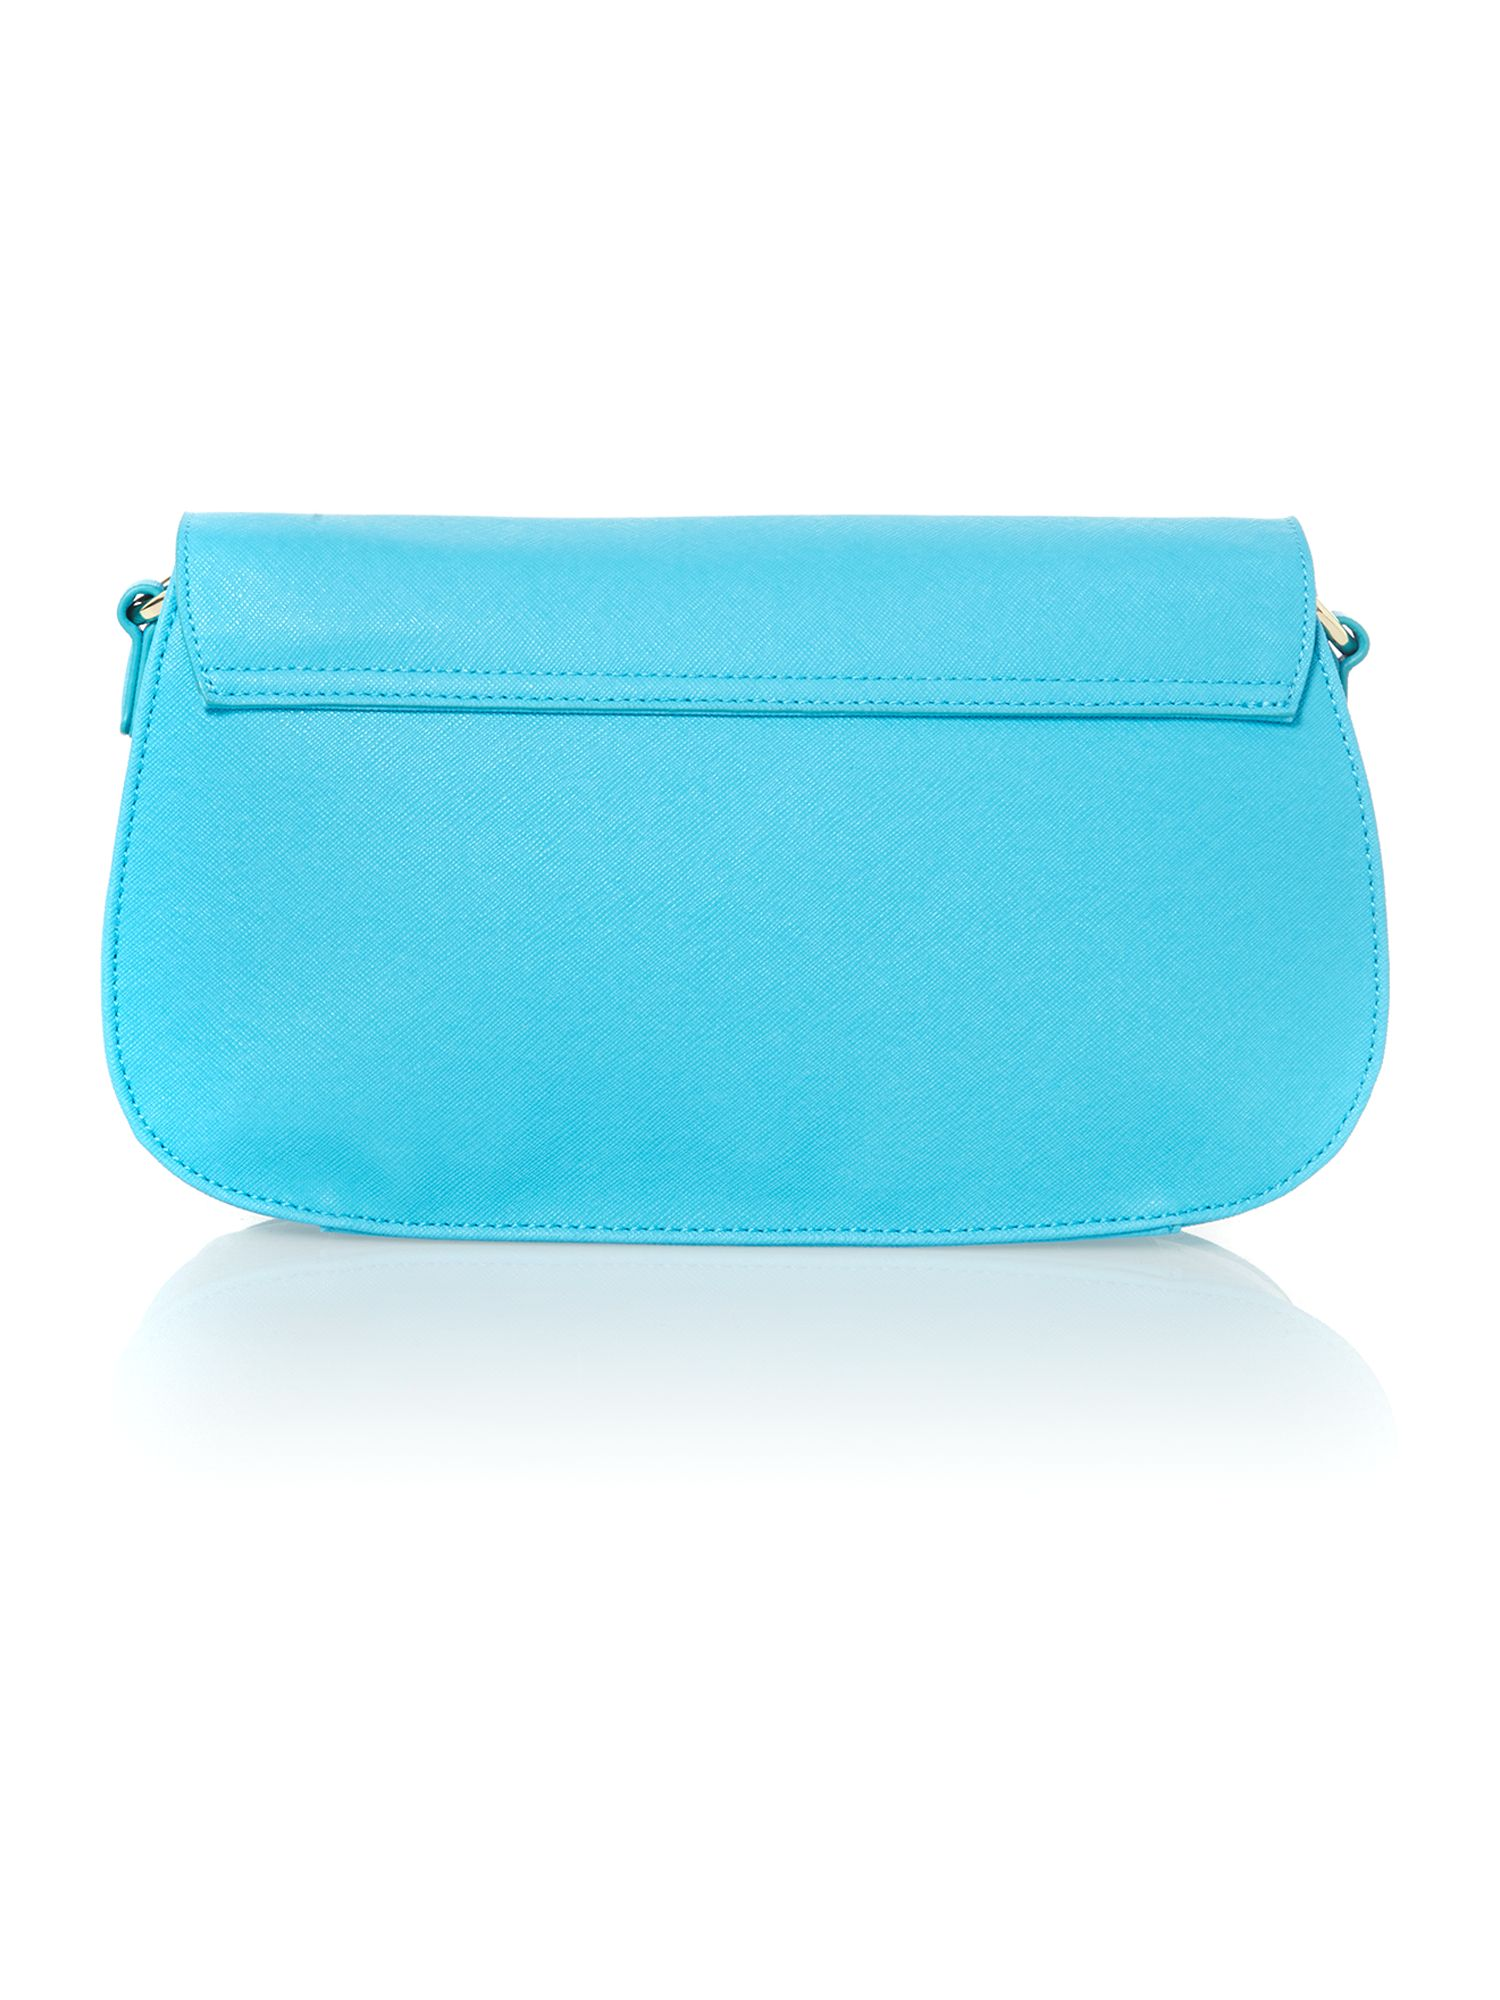 Turquoise saffiano small crossbody bag